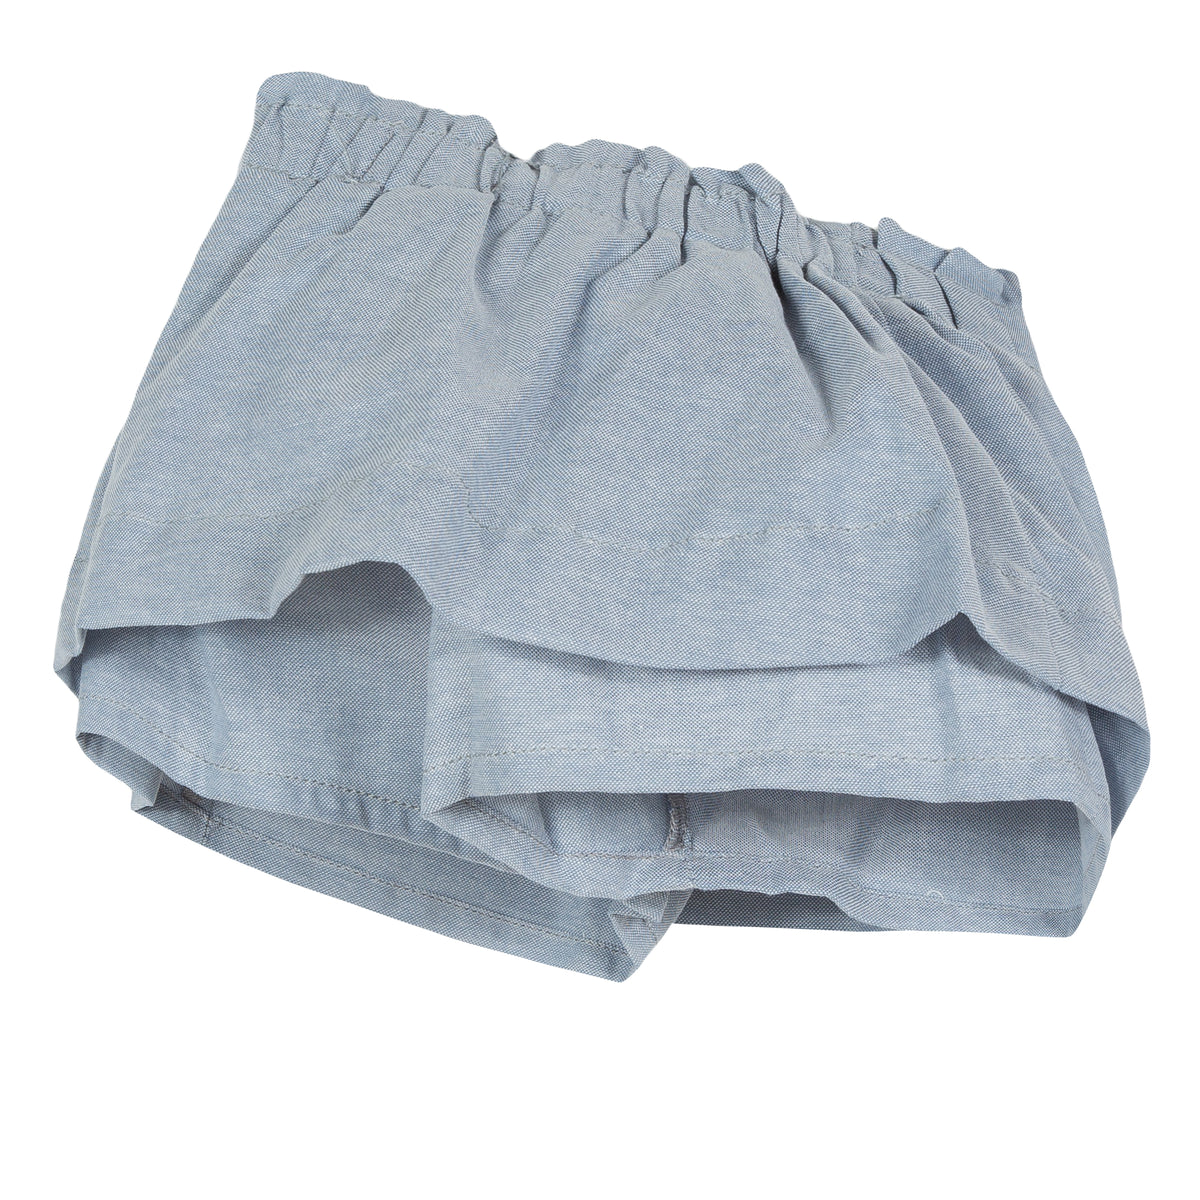 Light blue chambray skort is animated with elegant flat pleats on the waist, bringing a puffing effect to the silhouette. Designed by Jean Bourget.